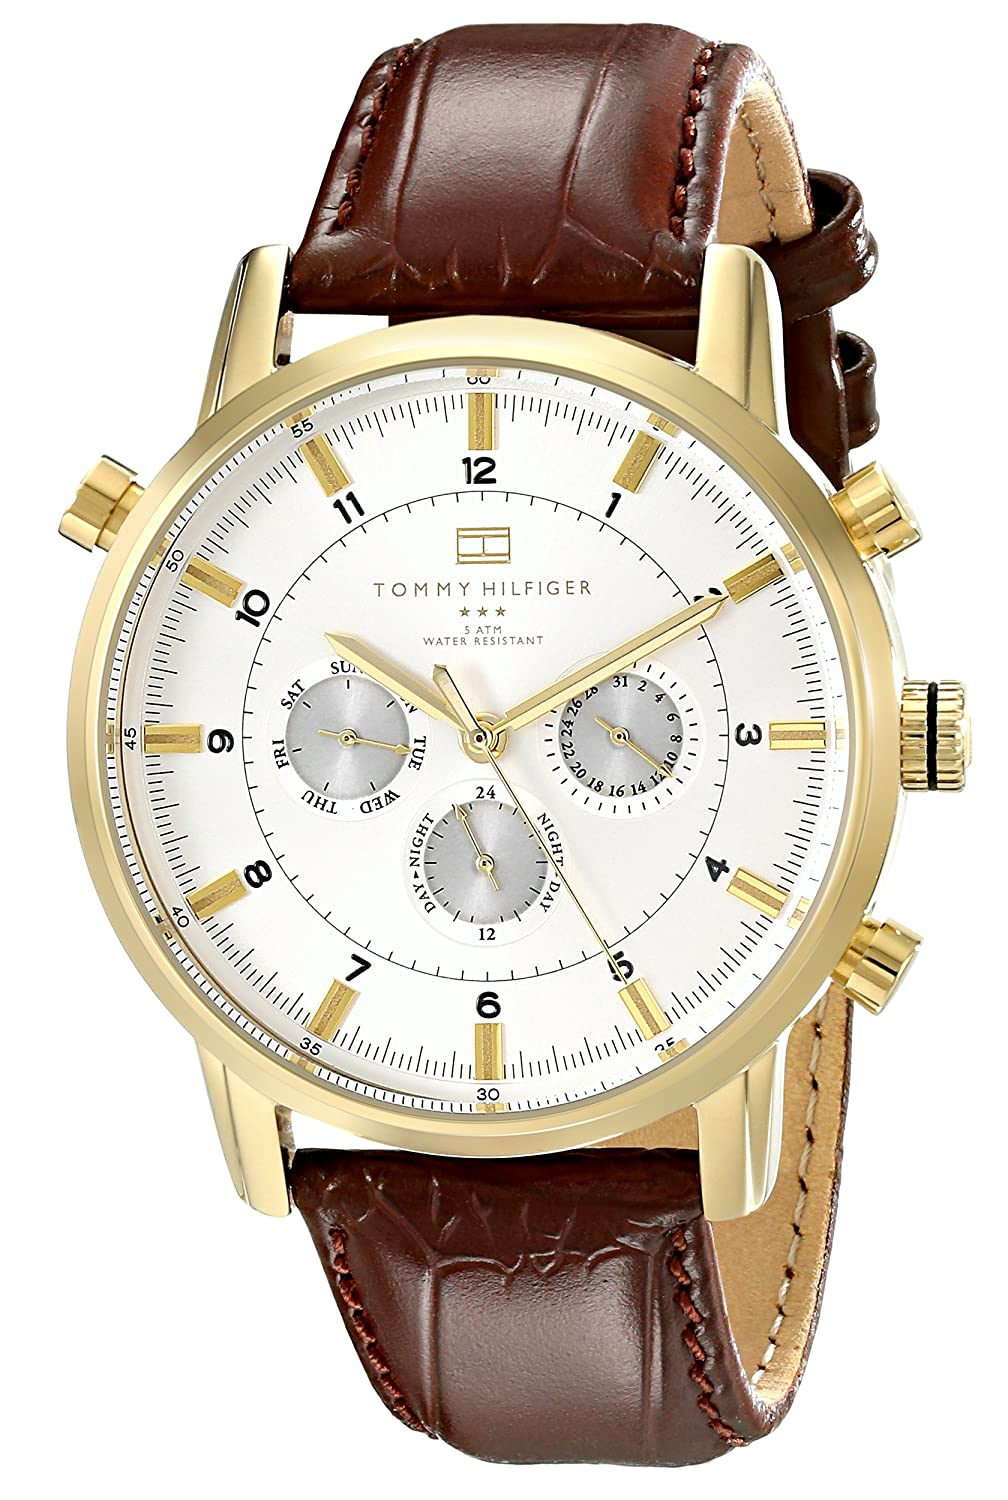 Amazoncom Tommy Hilfiger Mens 1790874 GoldTone Watch with Brown